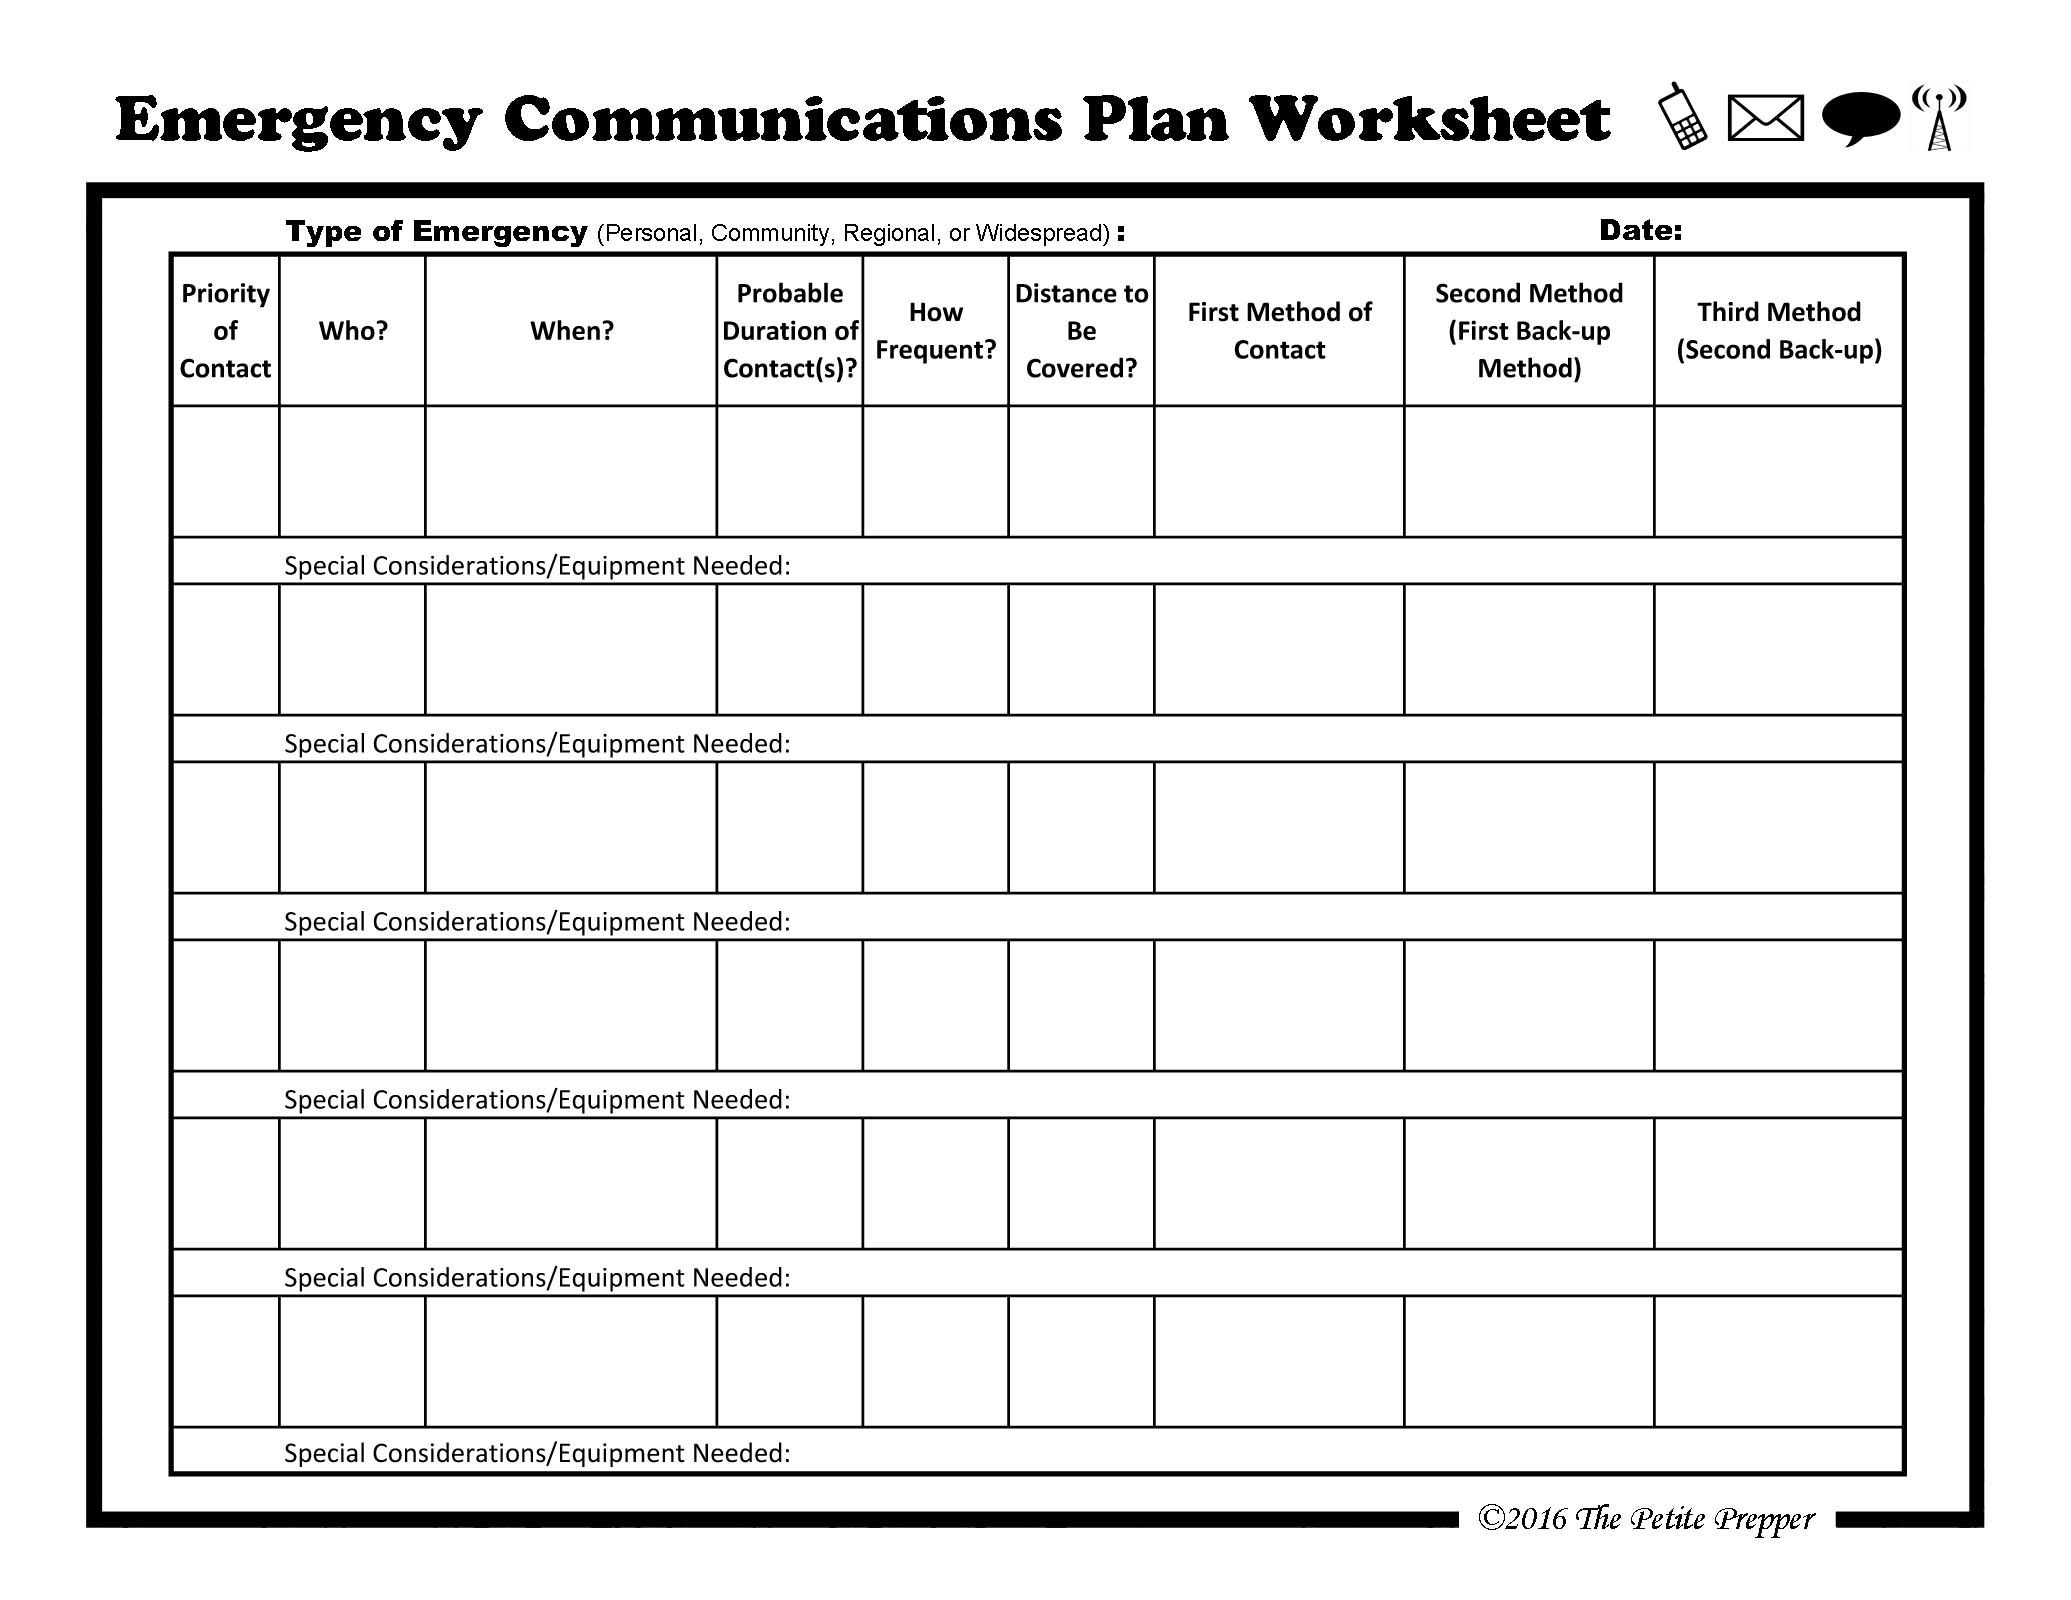 Emergency Communications Plan Worksheets By The Petite